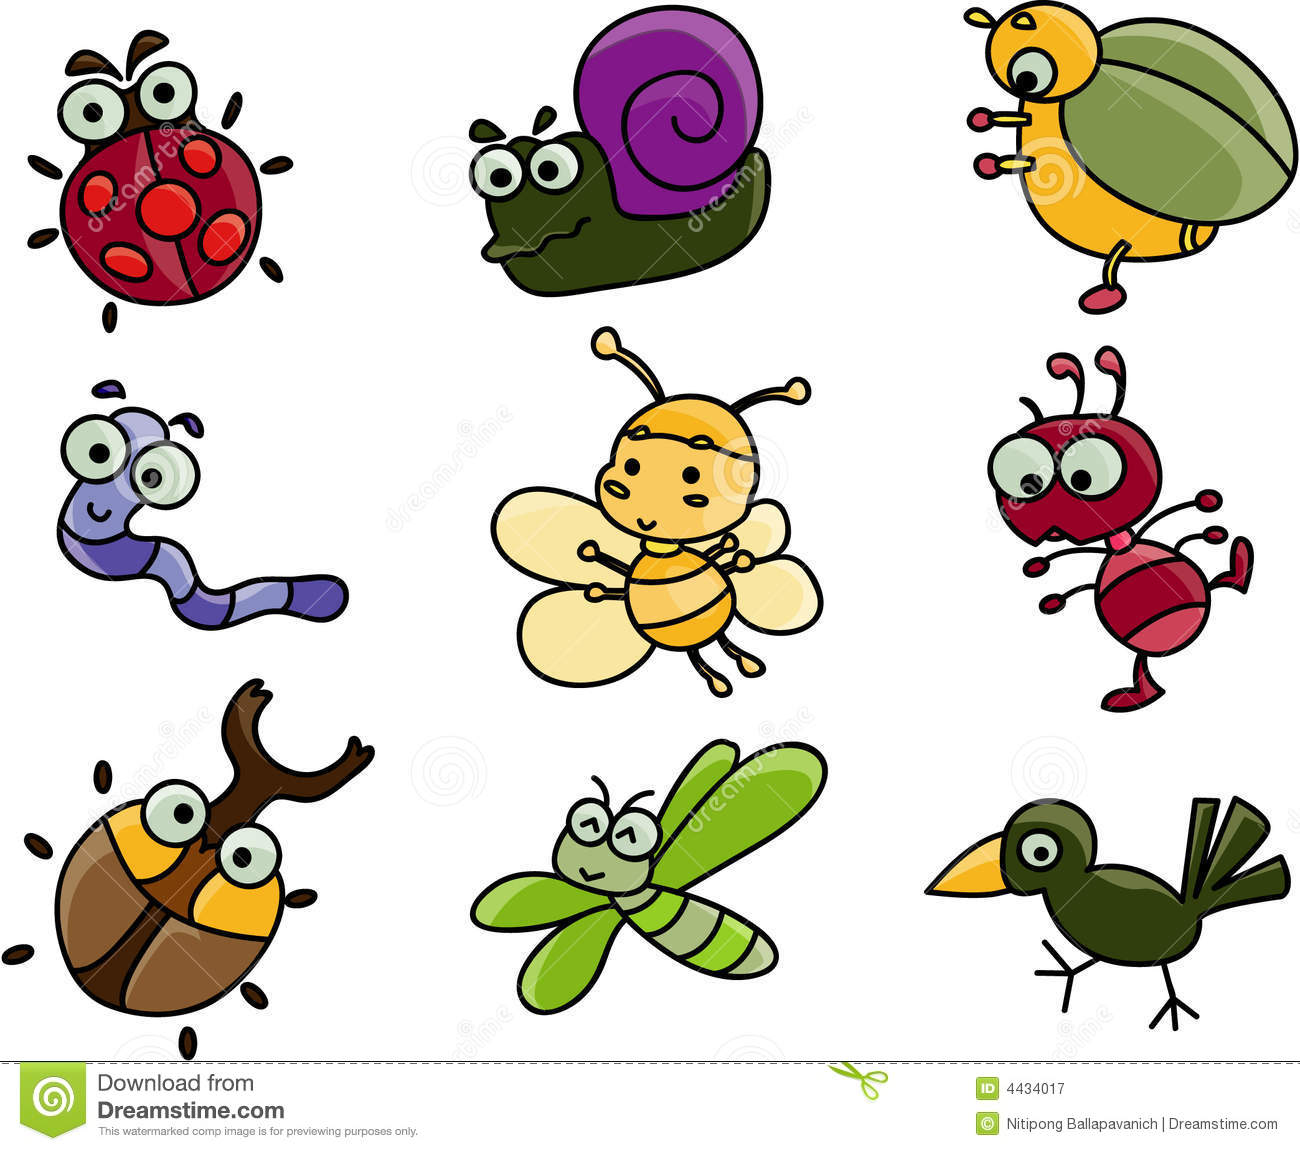 Bugs group clipart picture freeuse library Cute Cartoon Bugs Group with 52+ items picture freeuse library